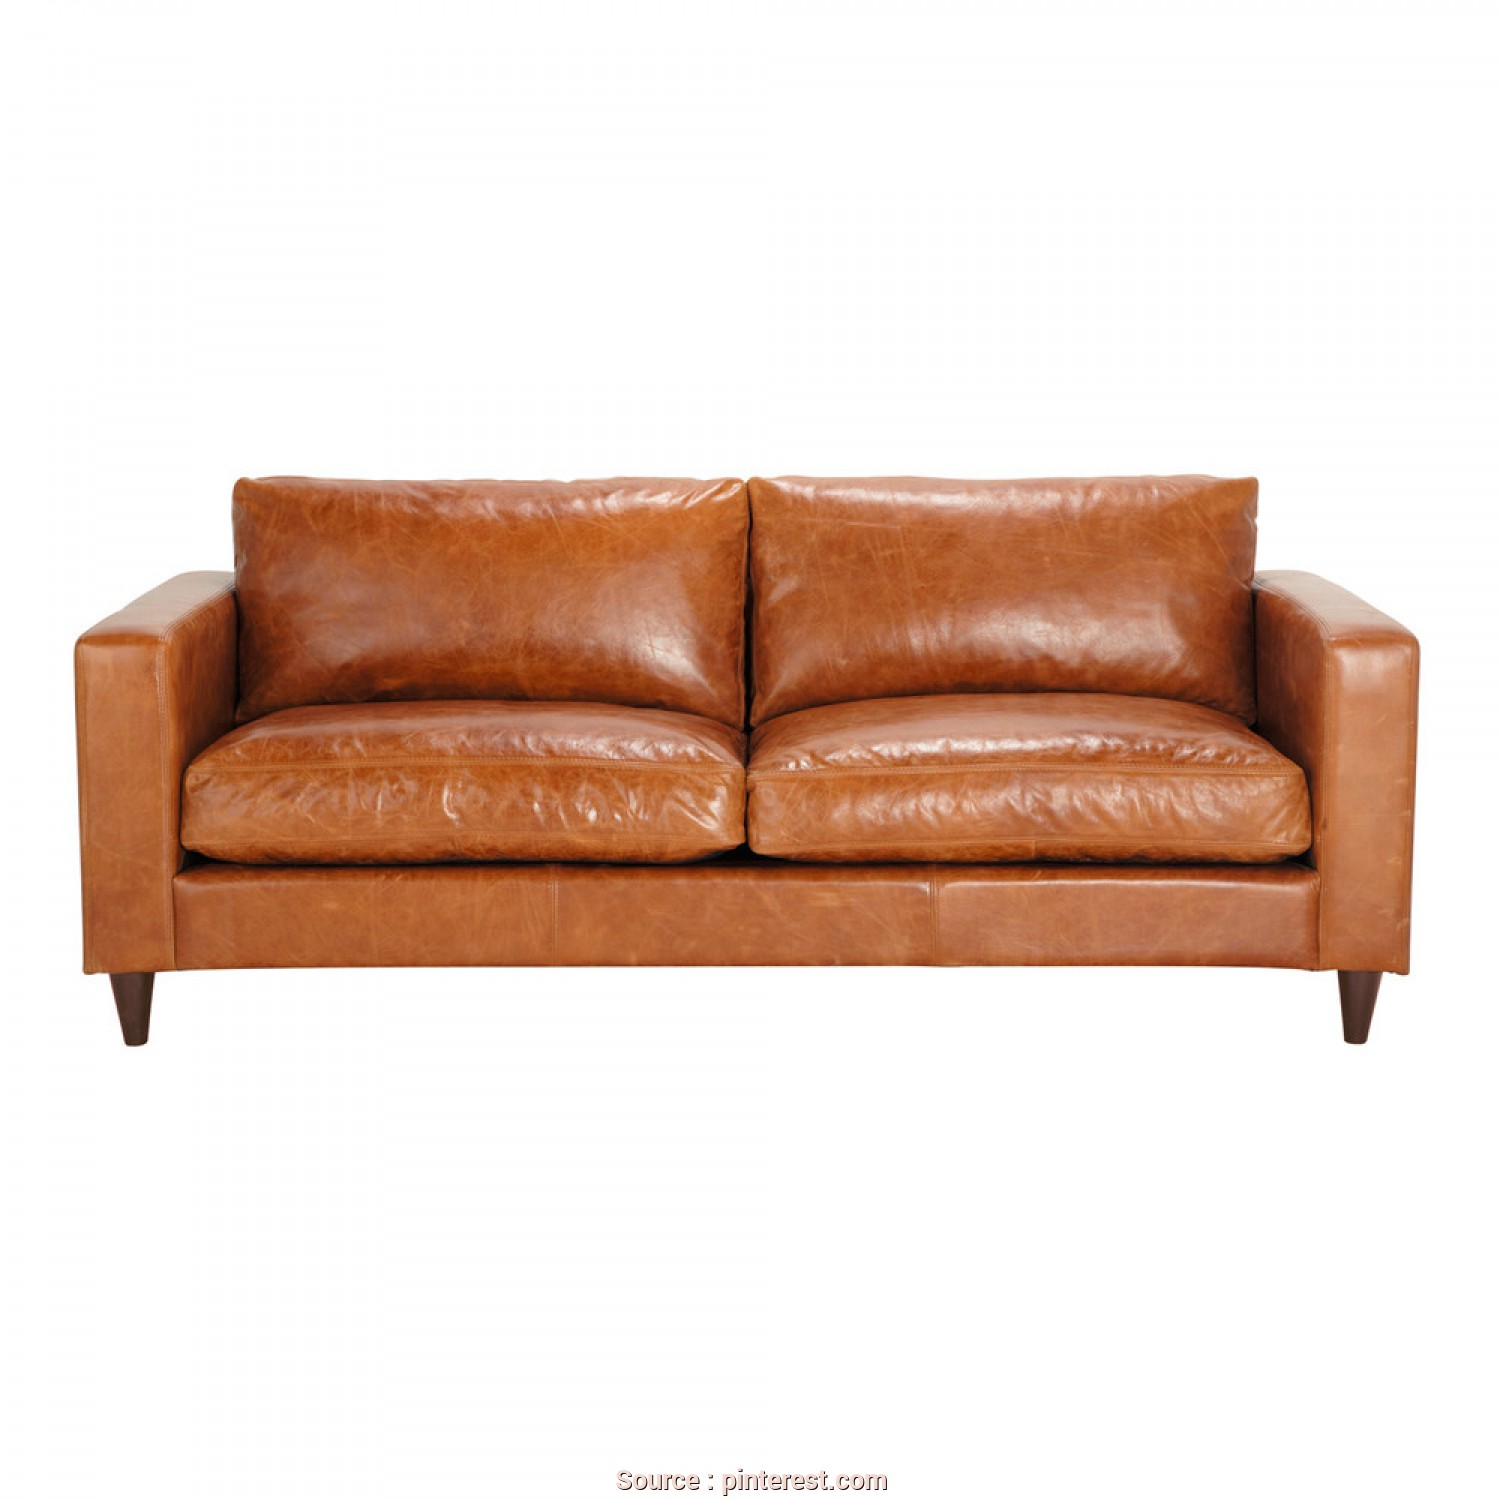 Divano Dandy Maison Du Monde, Freddo Vintage 3-Seater Leather Sofa, Camel Colored, Maisons Du Monde